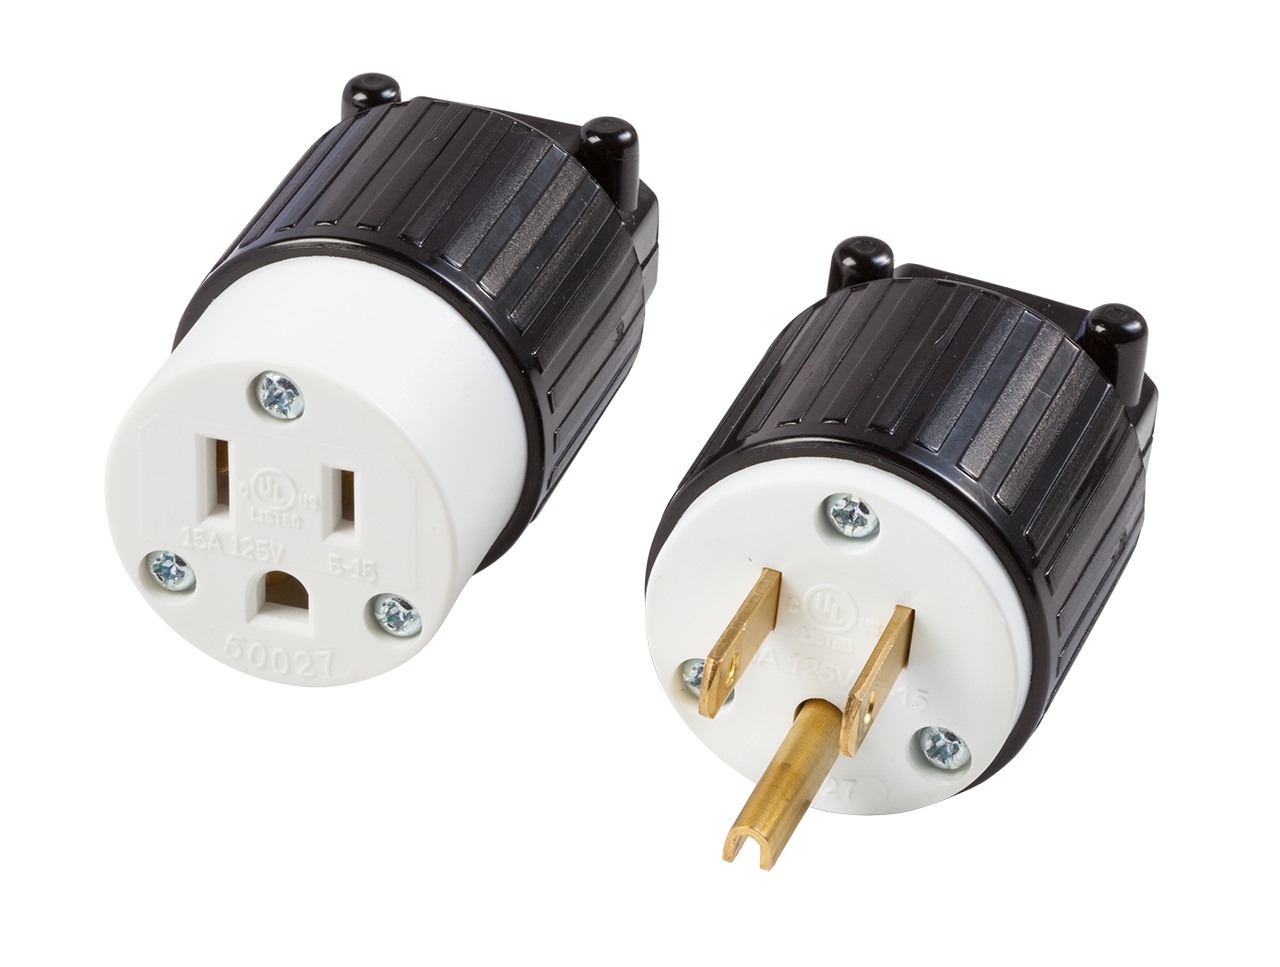 515 P Construction Electrical Products